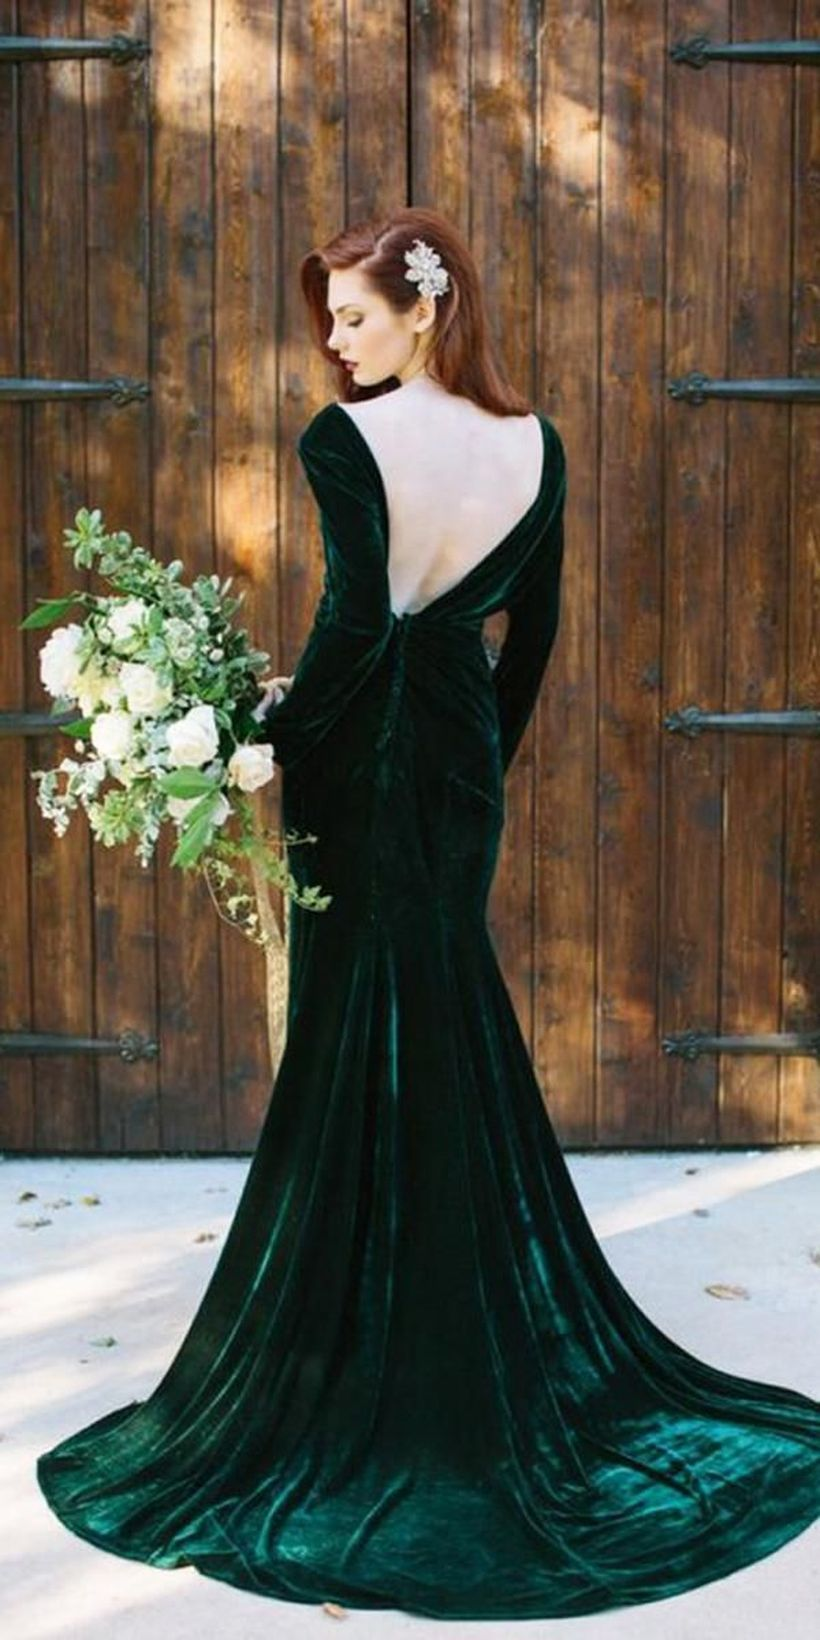 57 outstanding christmas wedding dresses to inspire | green